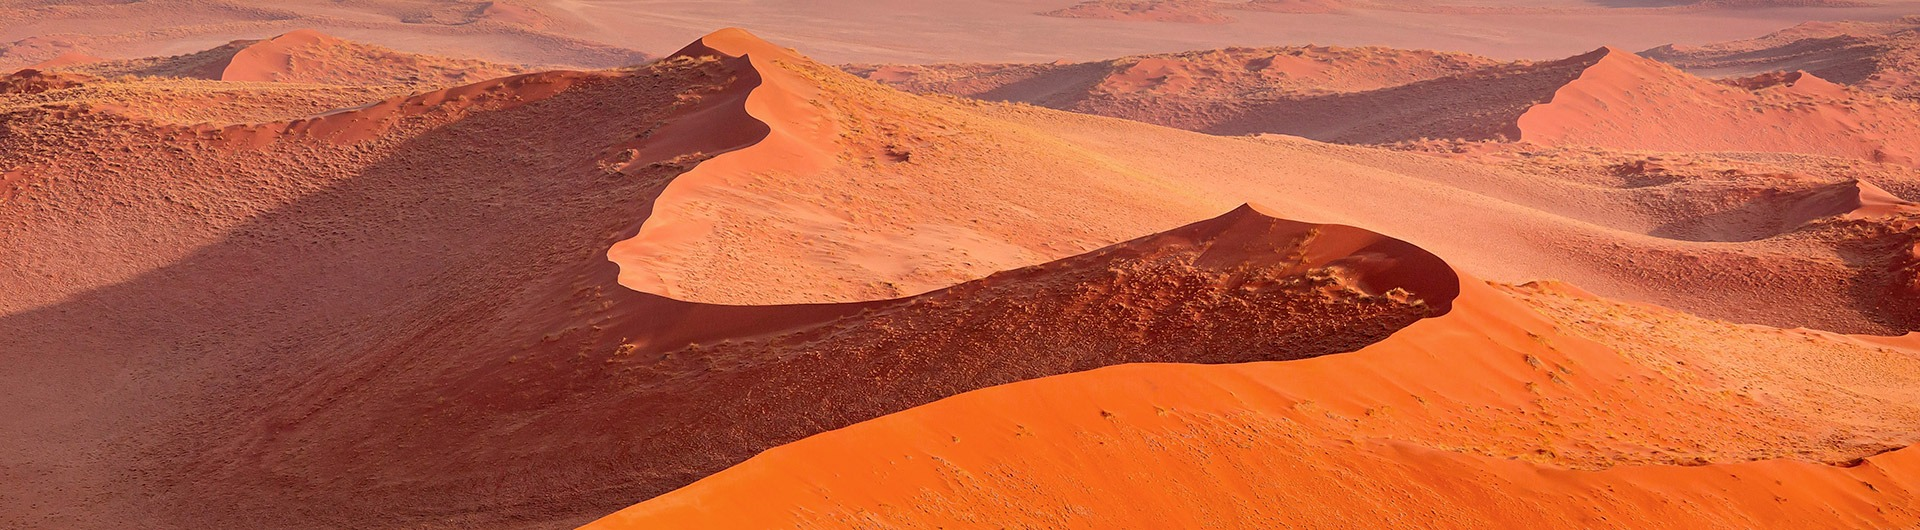 Ochre-colored sand dunes in Namibia